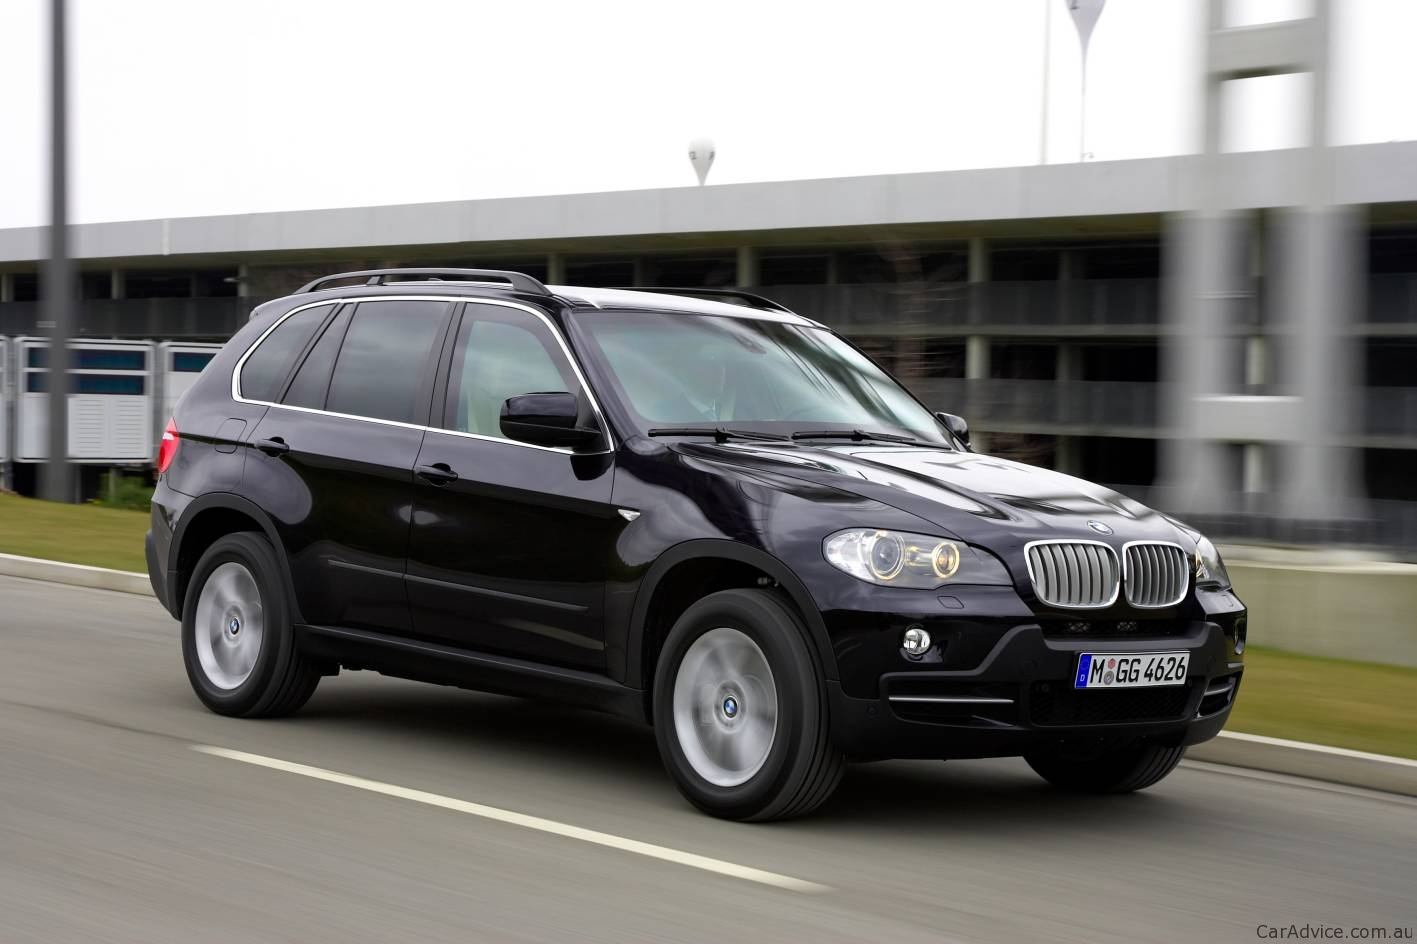 BMW X5 Australian Federal Police vehicles - photos | CarAdvice